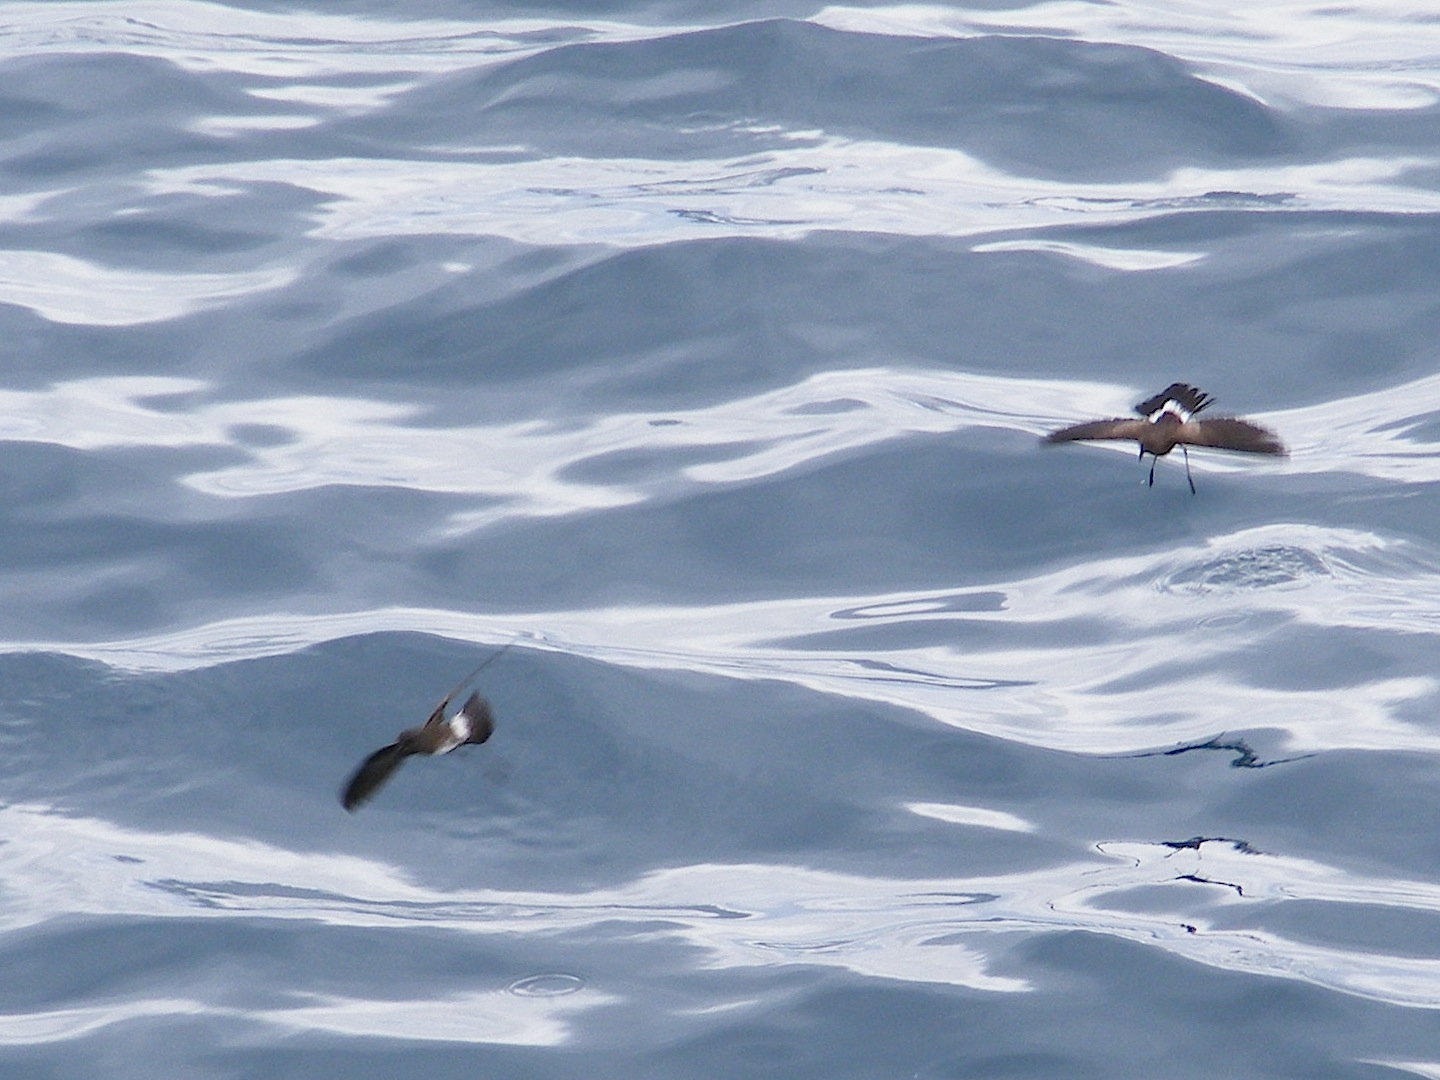 Two storm petrels almost dancing upon the sea. Their wings and bodies are dark grey and their wings are spread straight out. The legs are extended down to the water and you can see ripples where they recently touched. Their tails begin with a band of white and the ends are black.